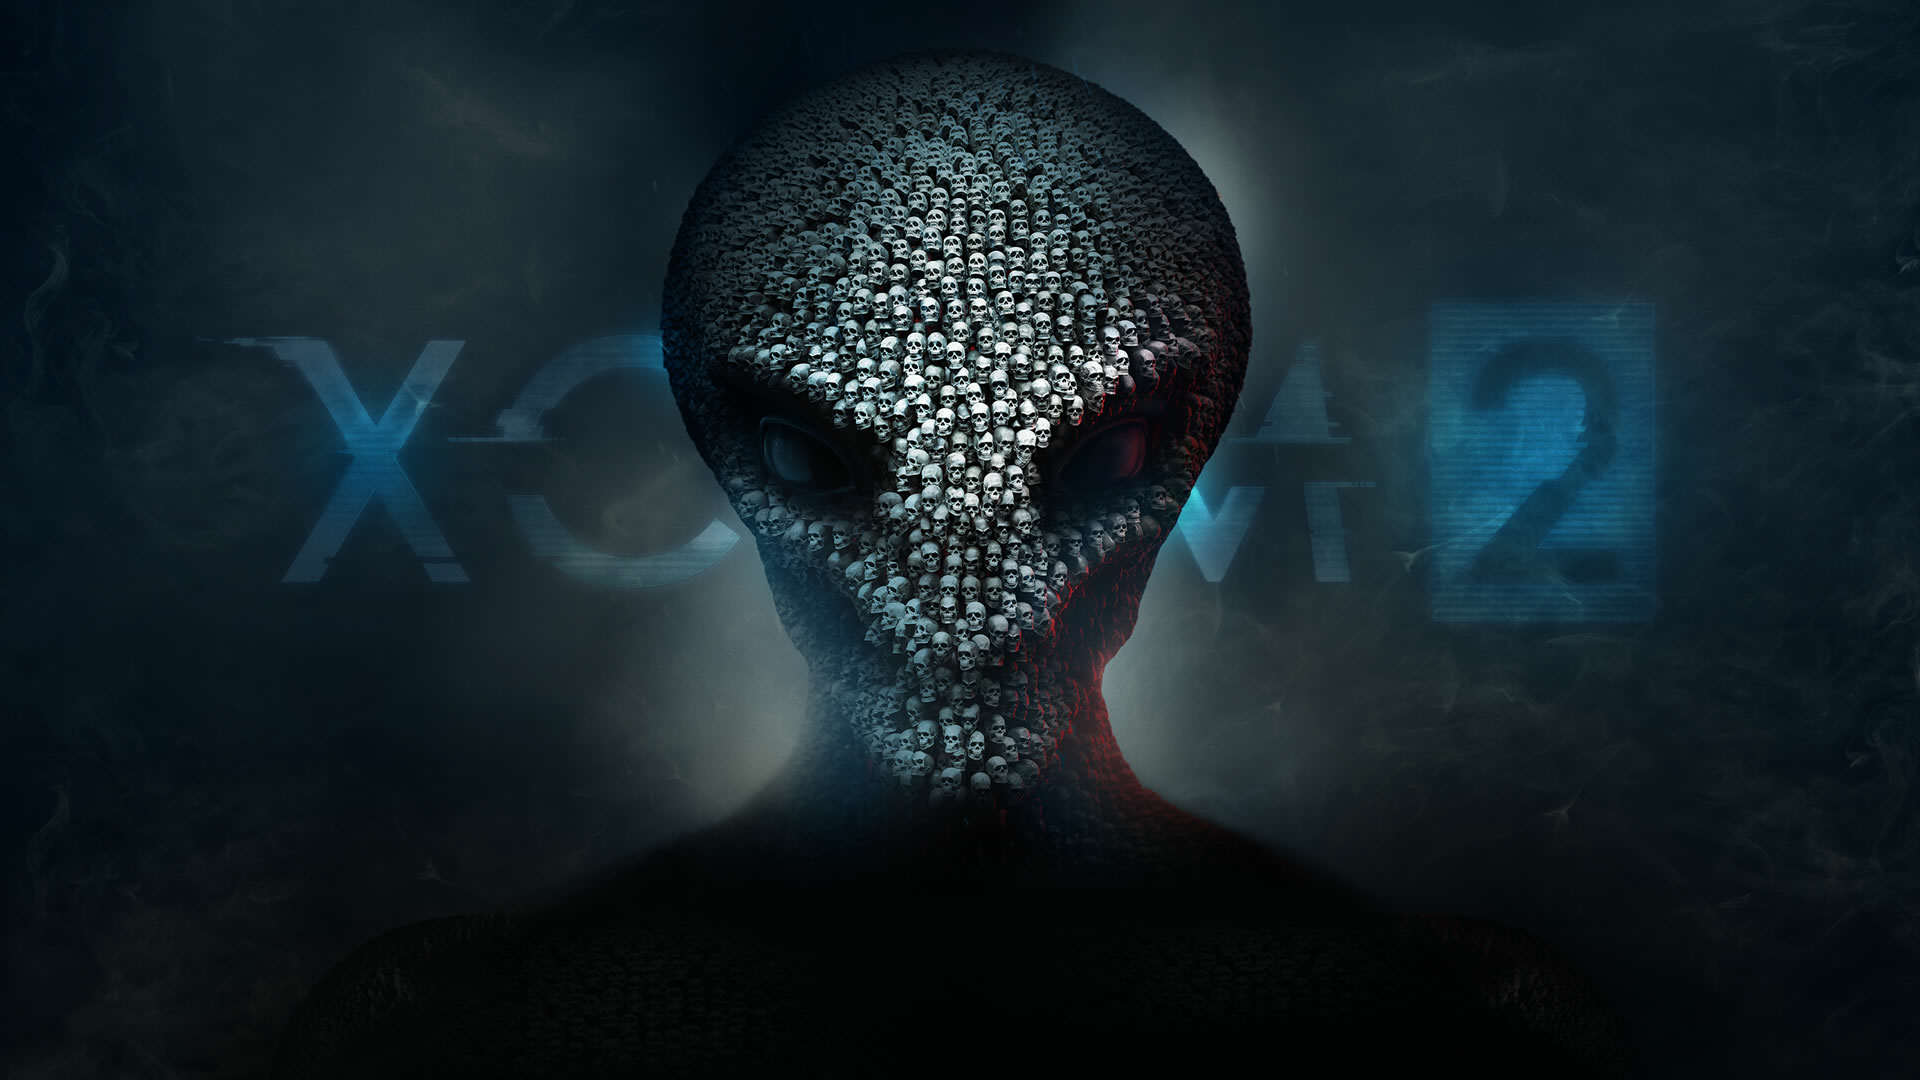 Critically Acclaimed PC Game Coming To Consoles In September XCOM 2 review